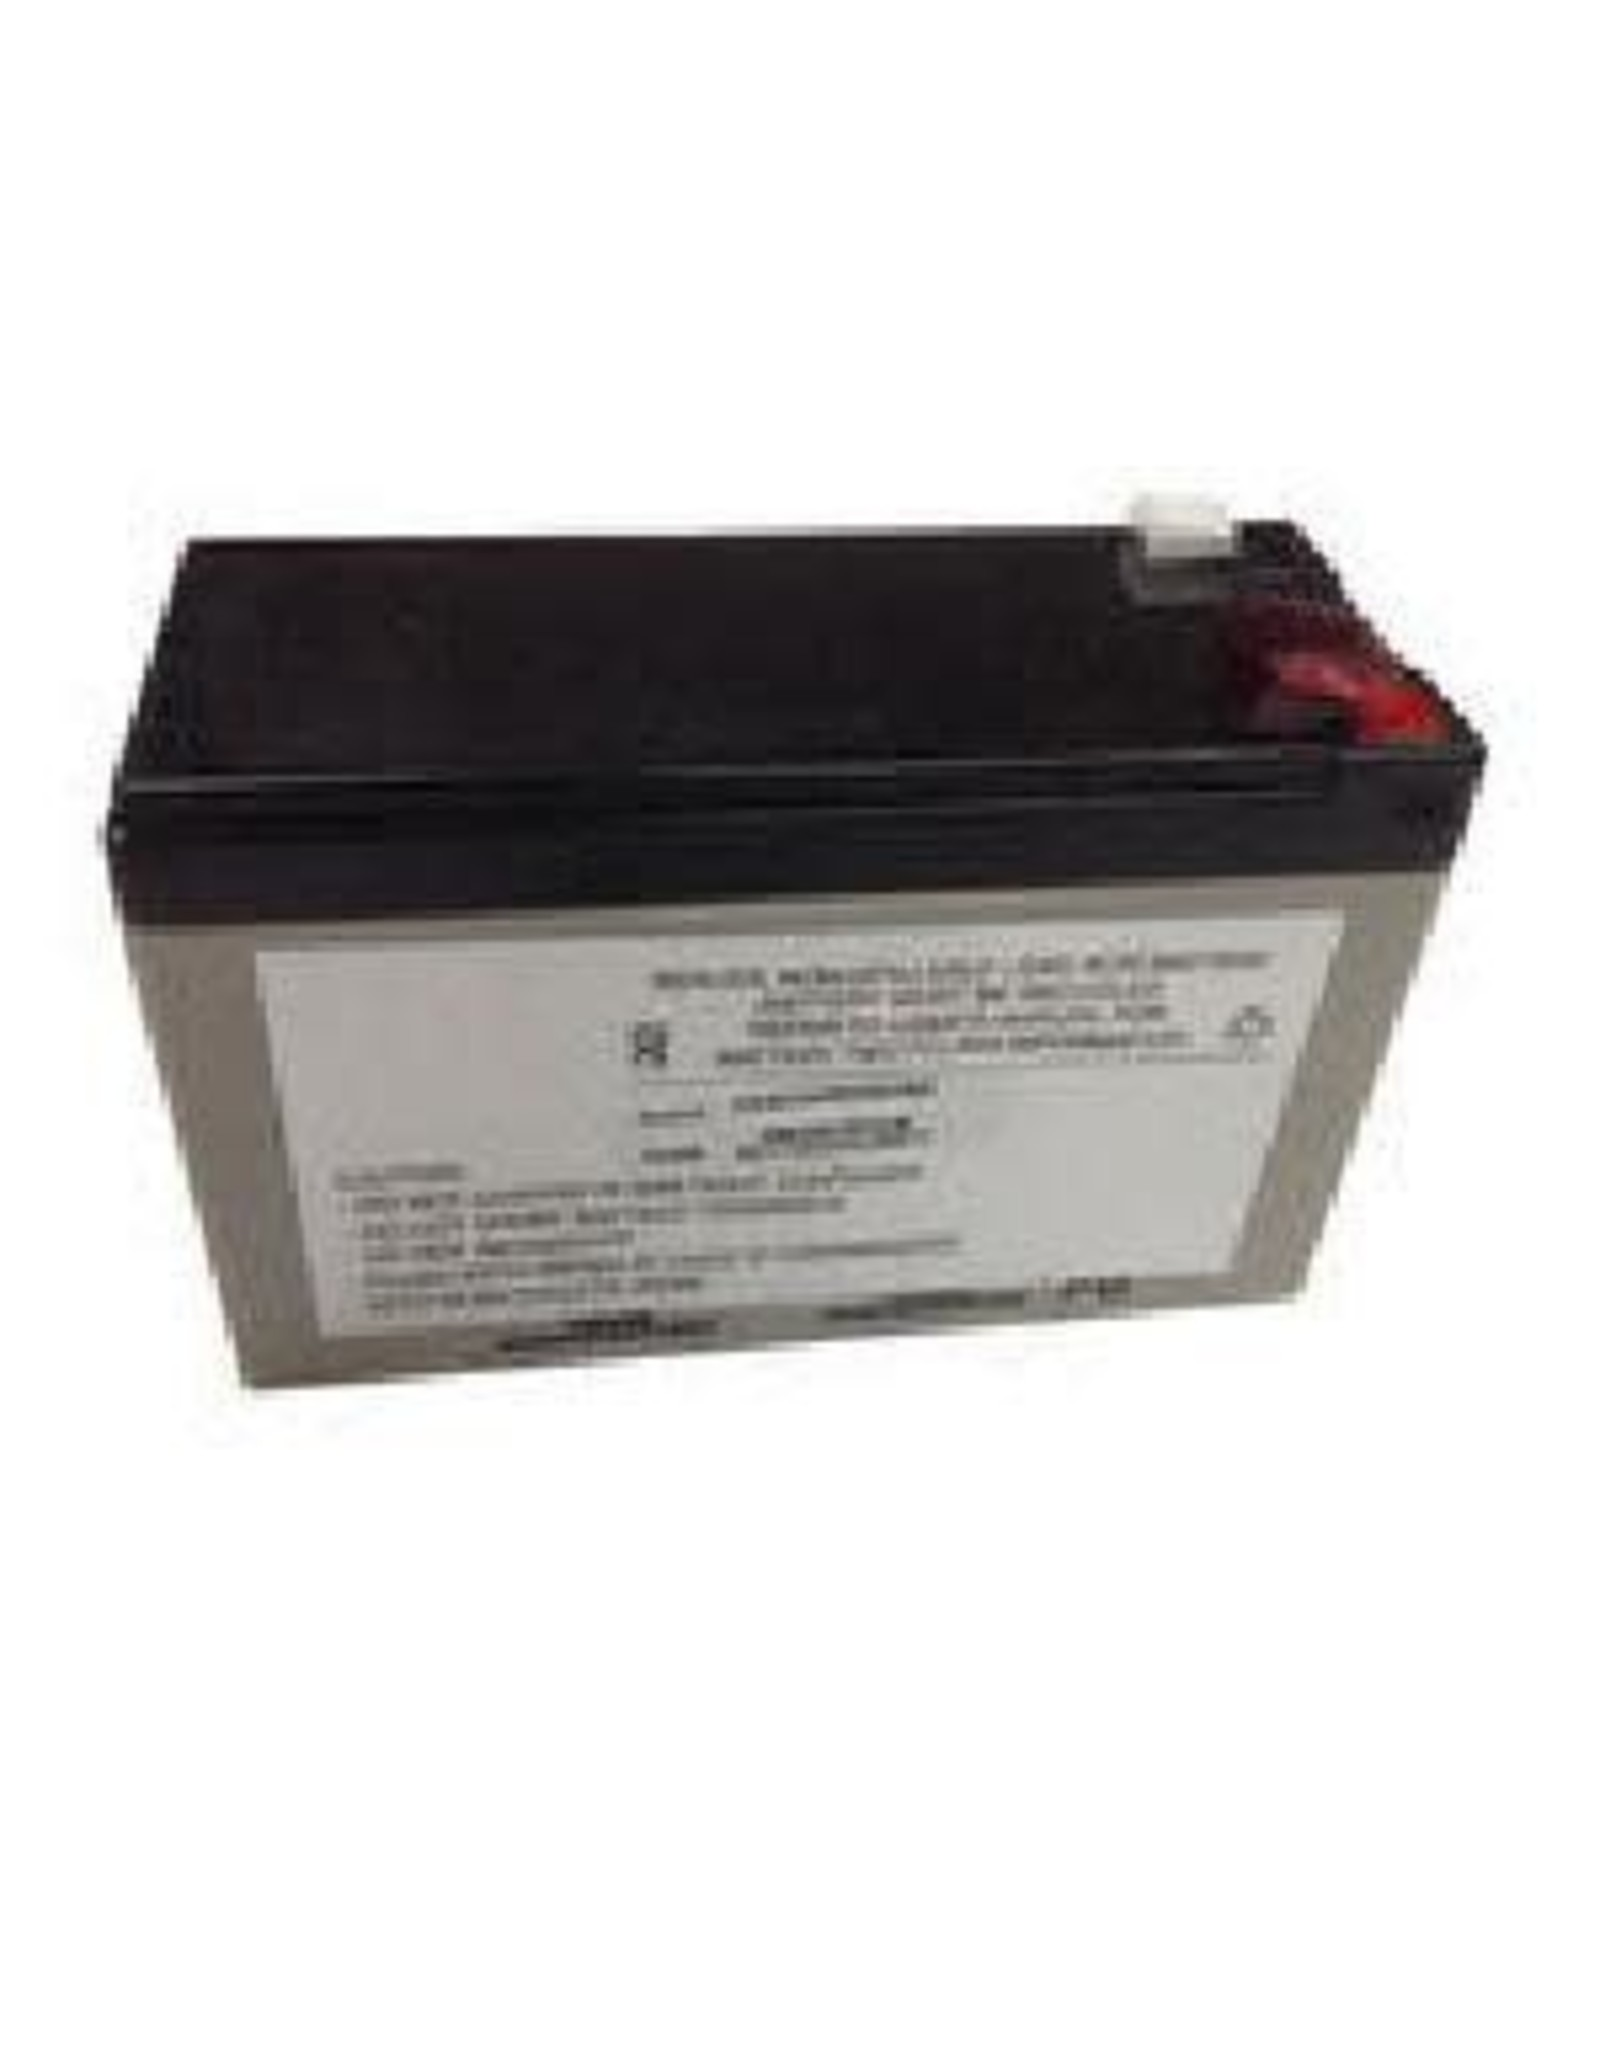 BTI BTI Replacement Battery for APC BE550G